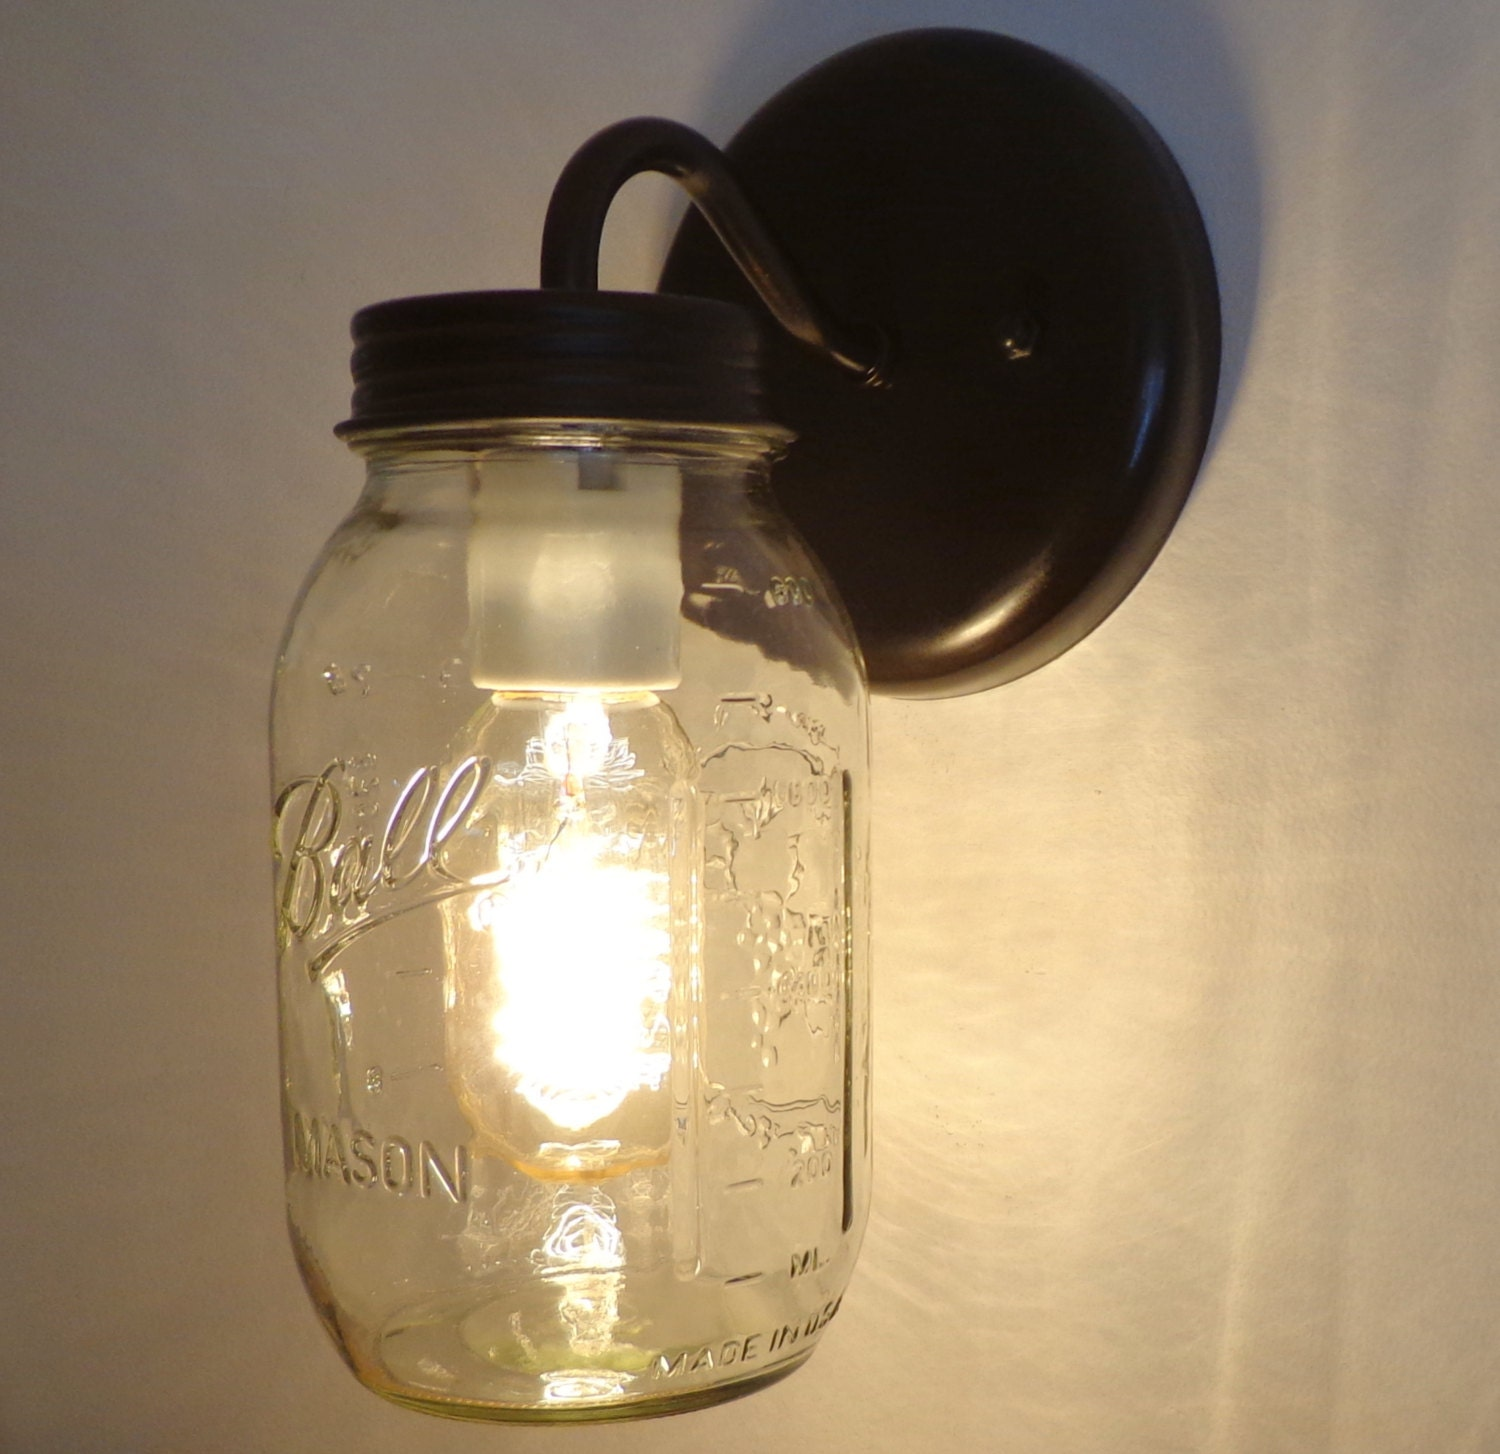 mason jar wall sconce lighting fixture new quart by lampgoods. Black Bedroom Furniture Sets. Home Design Ideas